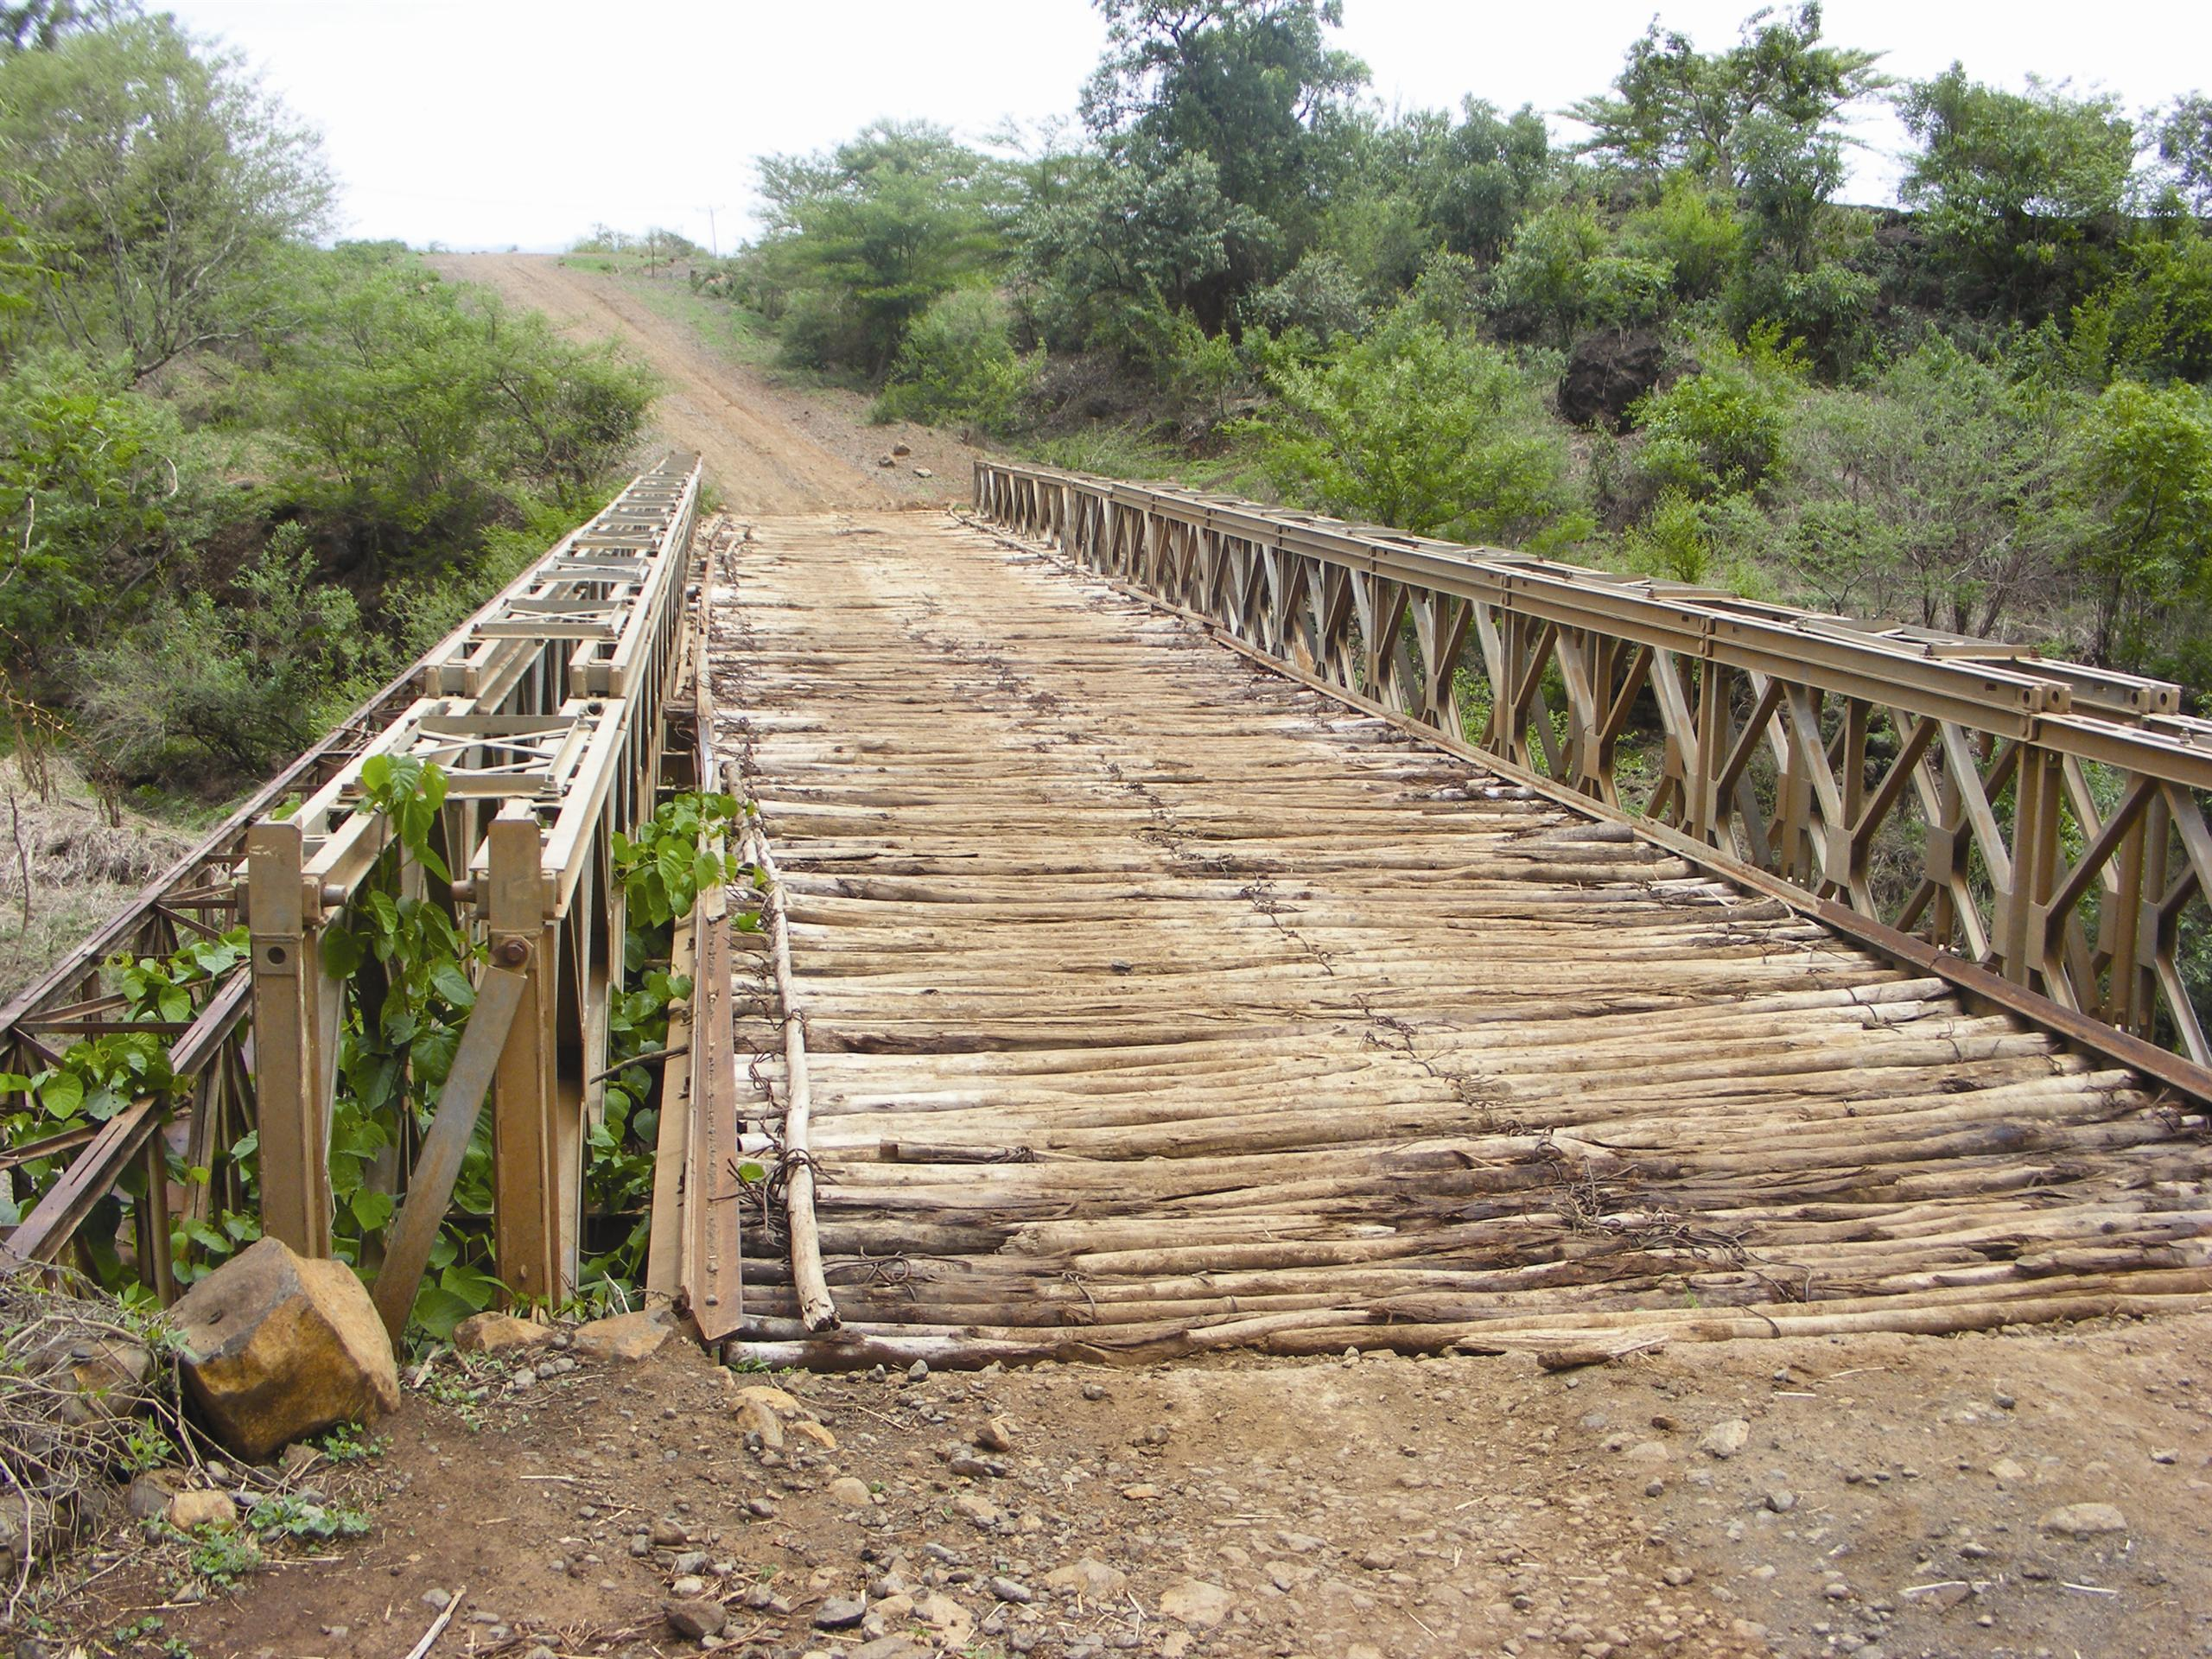 Wooden bridge over river valley